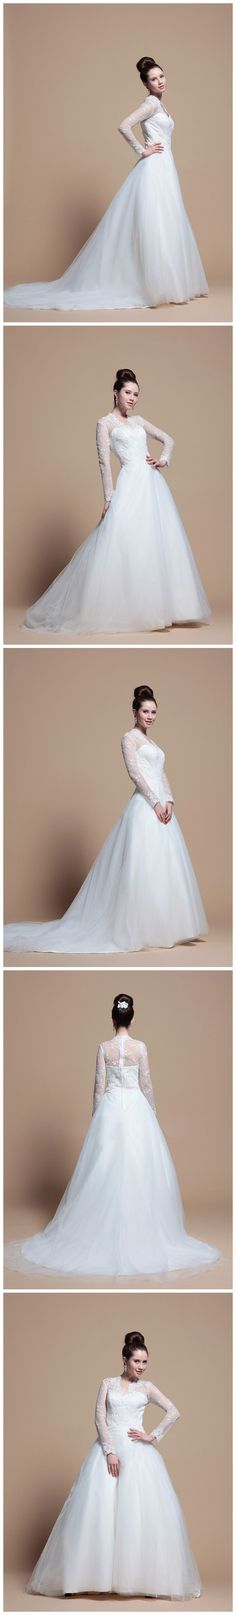 Soo pretty and it reminds me of Kate Middleton's wedding dress